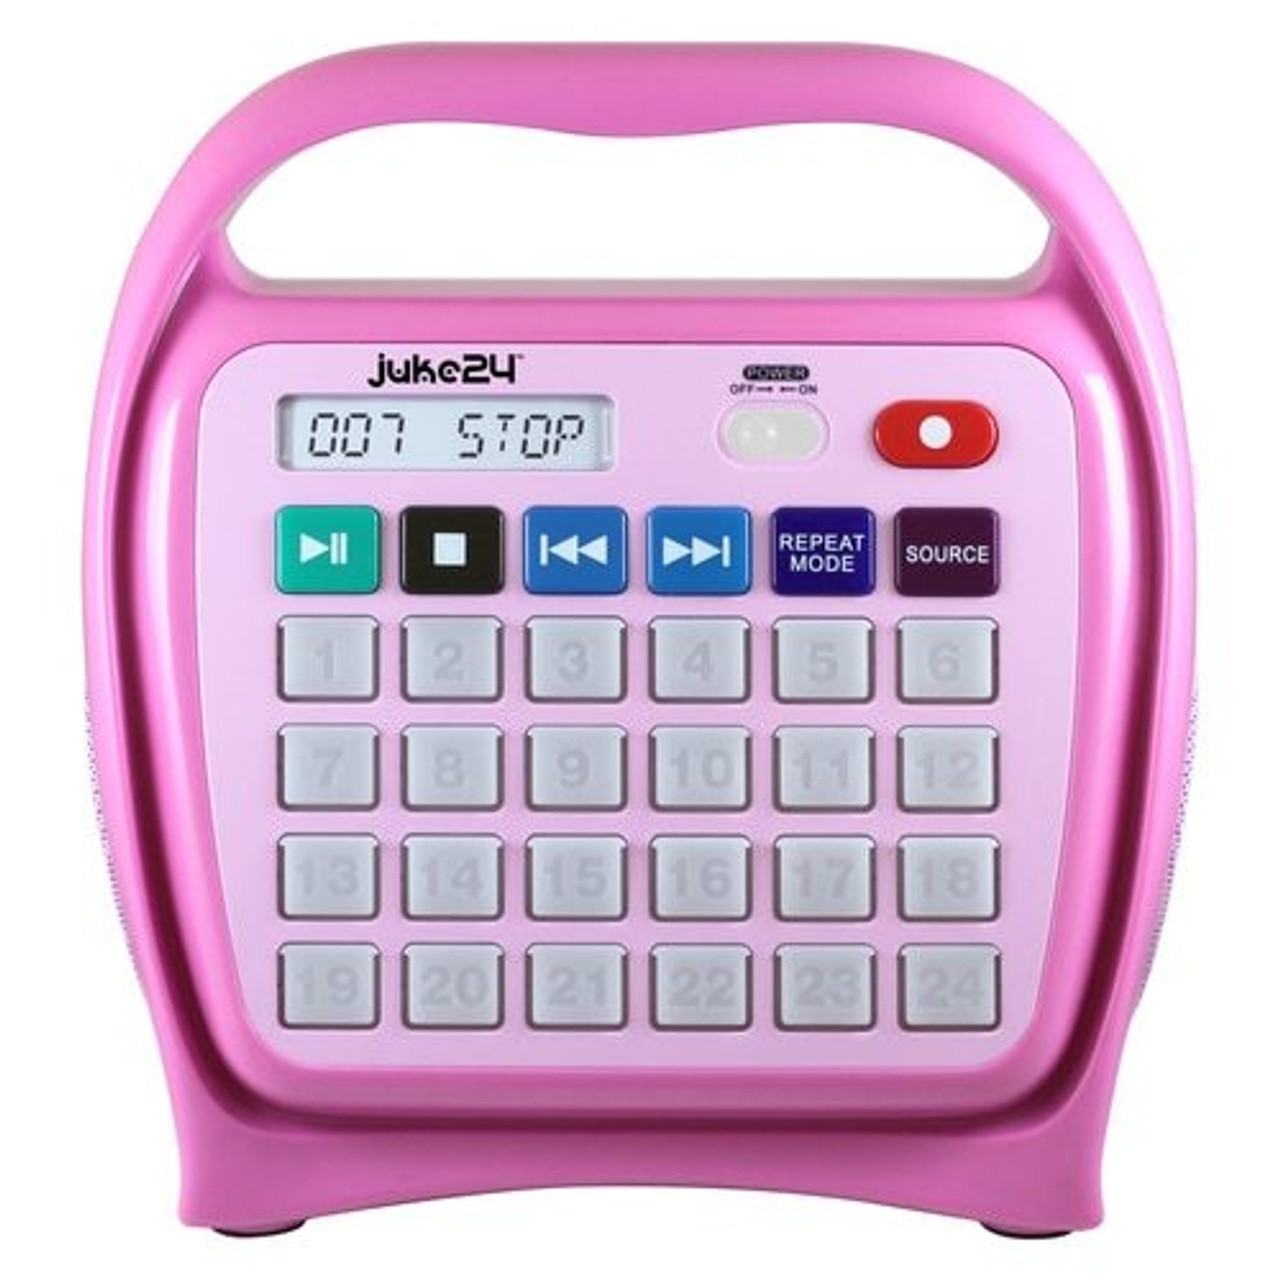 HamiltonBuhl Juke24 - Portable, Digital Jukebox with CD Player and Karaoke  Function - Pink